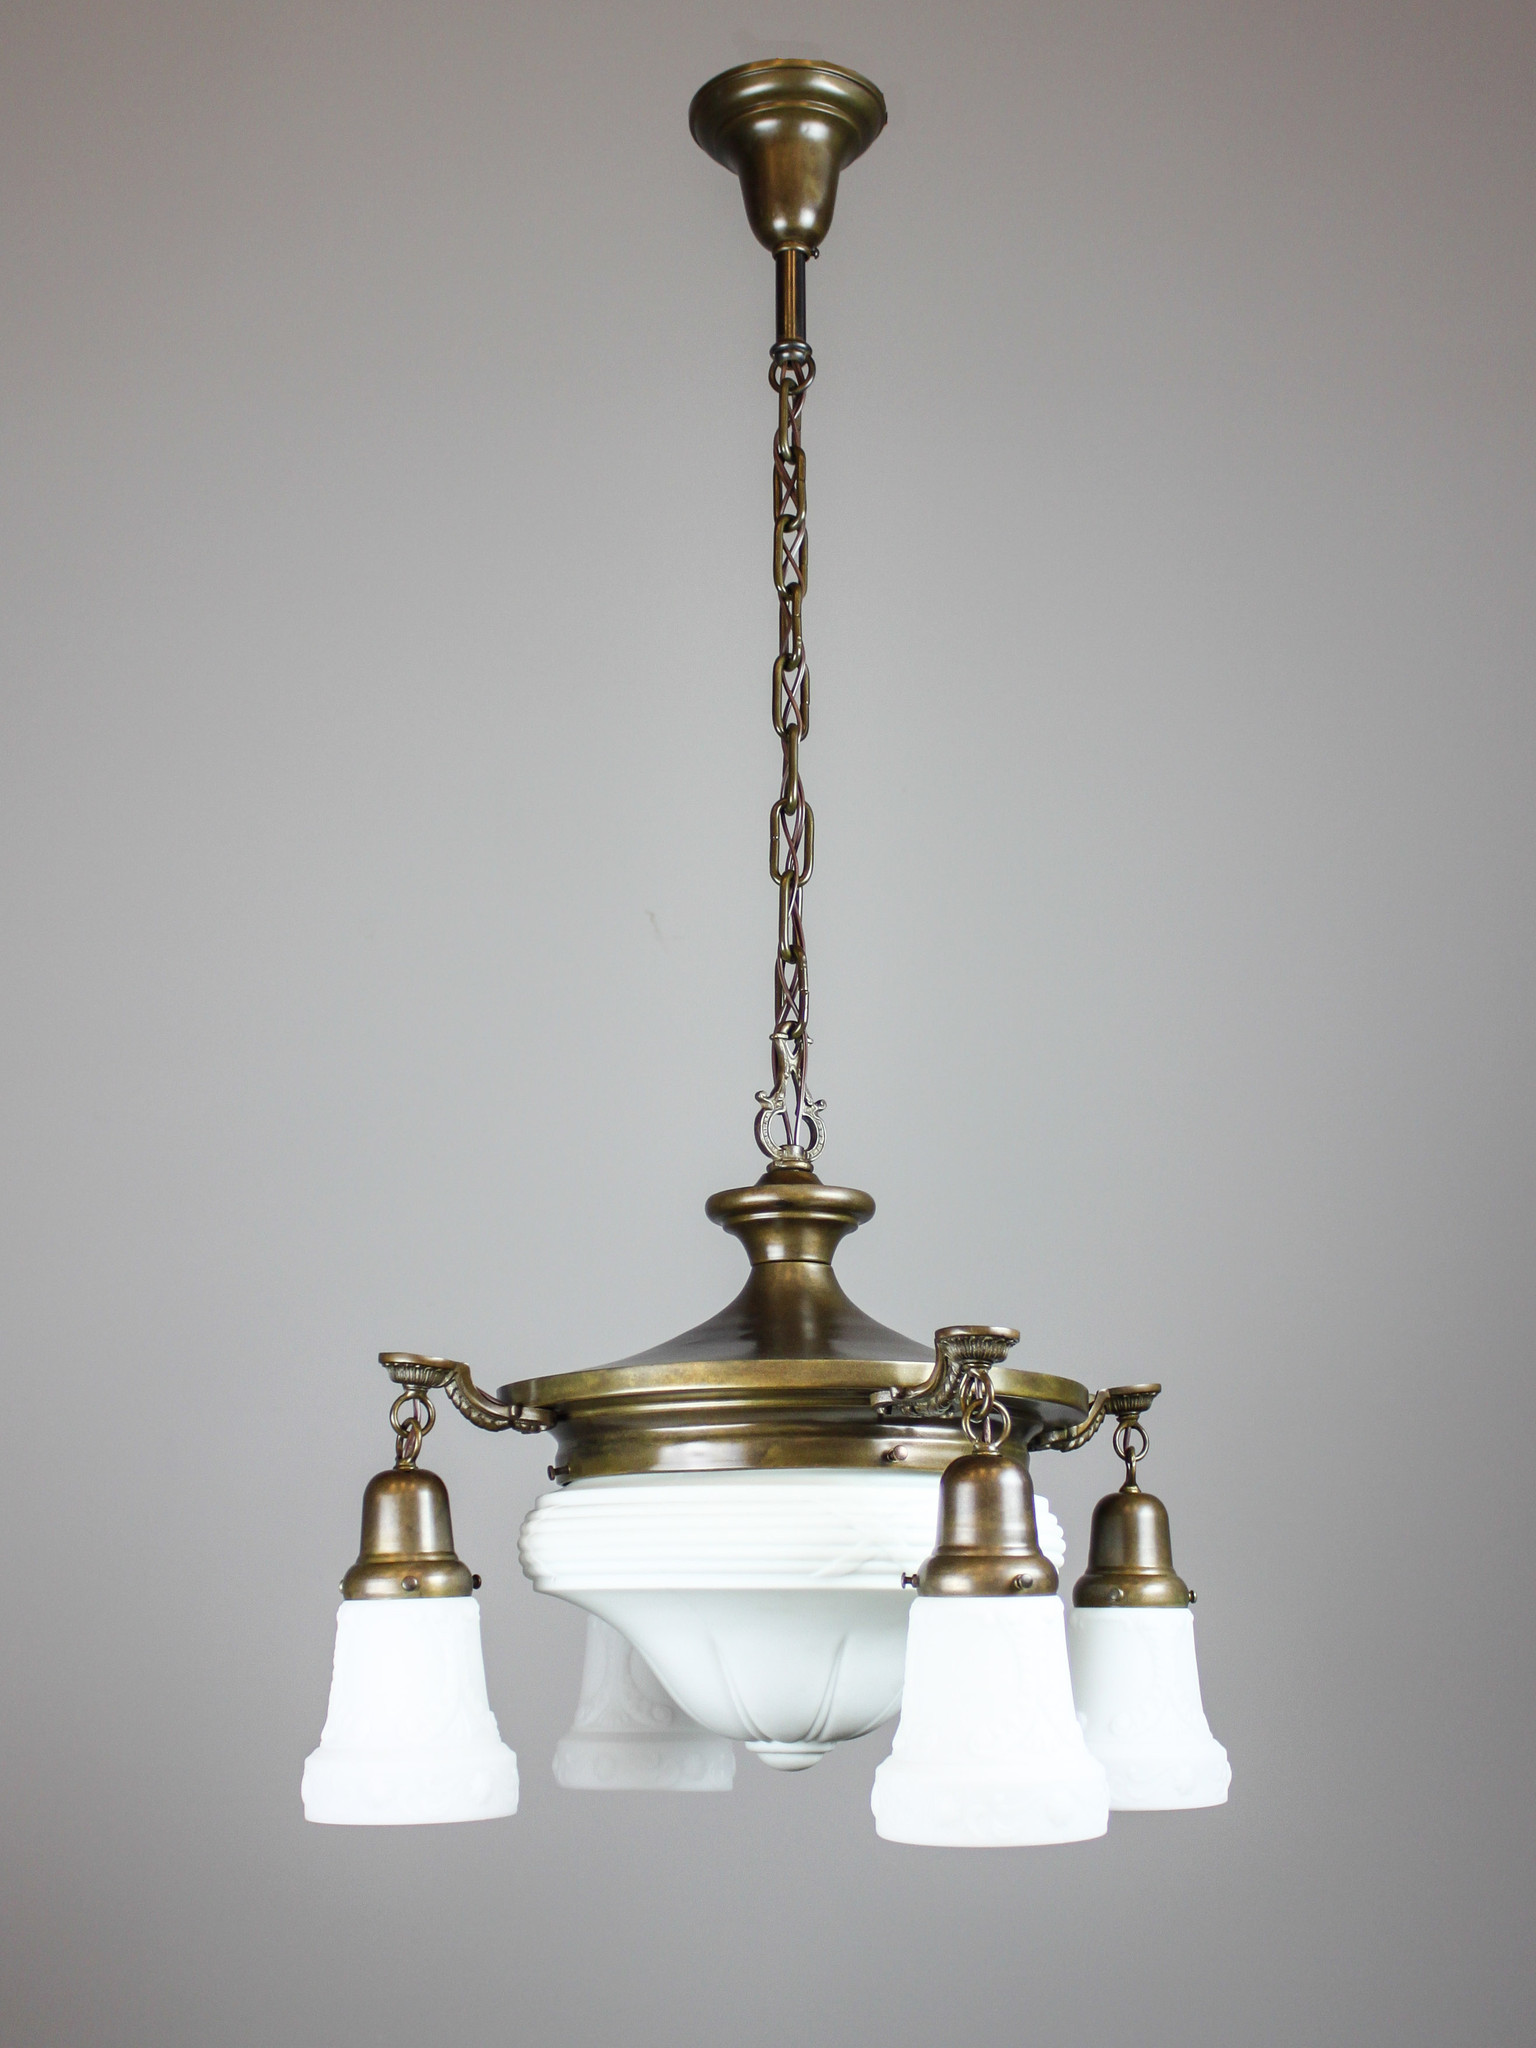 hbm scenic shade lighting surprising shades nz lights art vintage antique lamp nyc deco ceiling switches fixture pendant light fixtures blog melbourne slip dupont